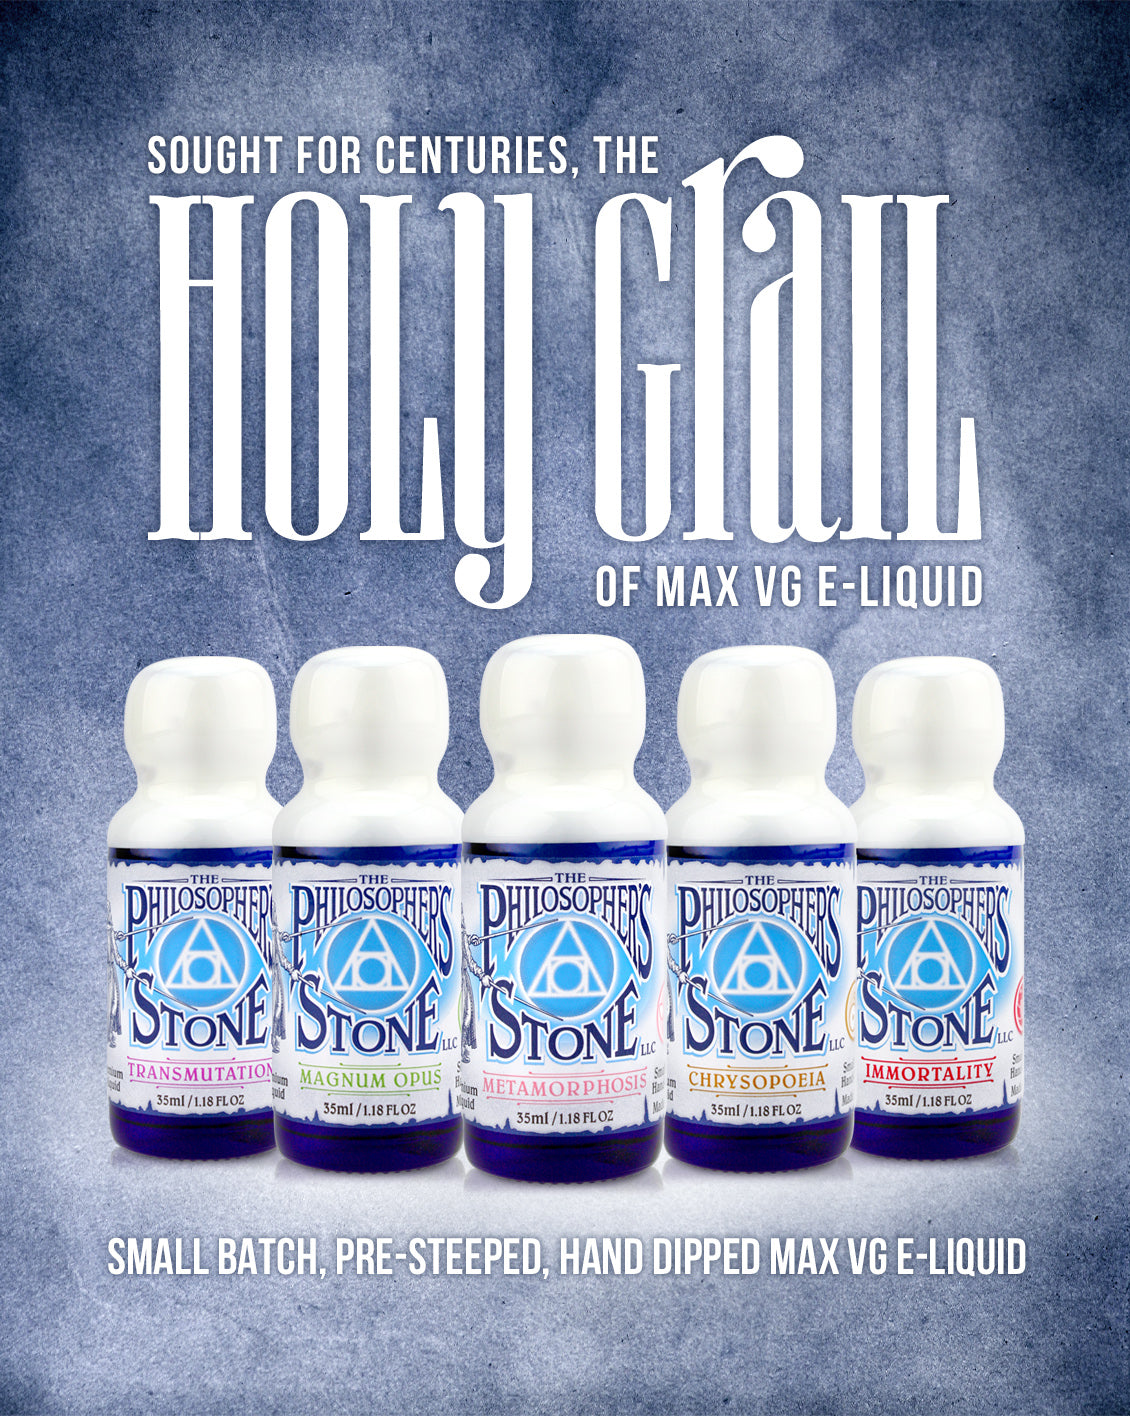 The Philosopher's Stone: The Holy Grail of Max VG E-liquid